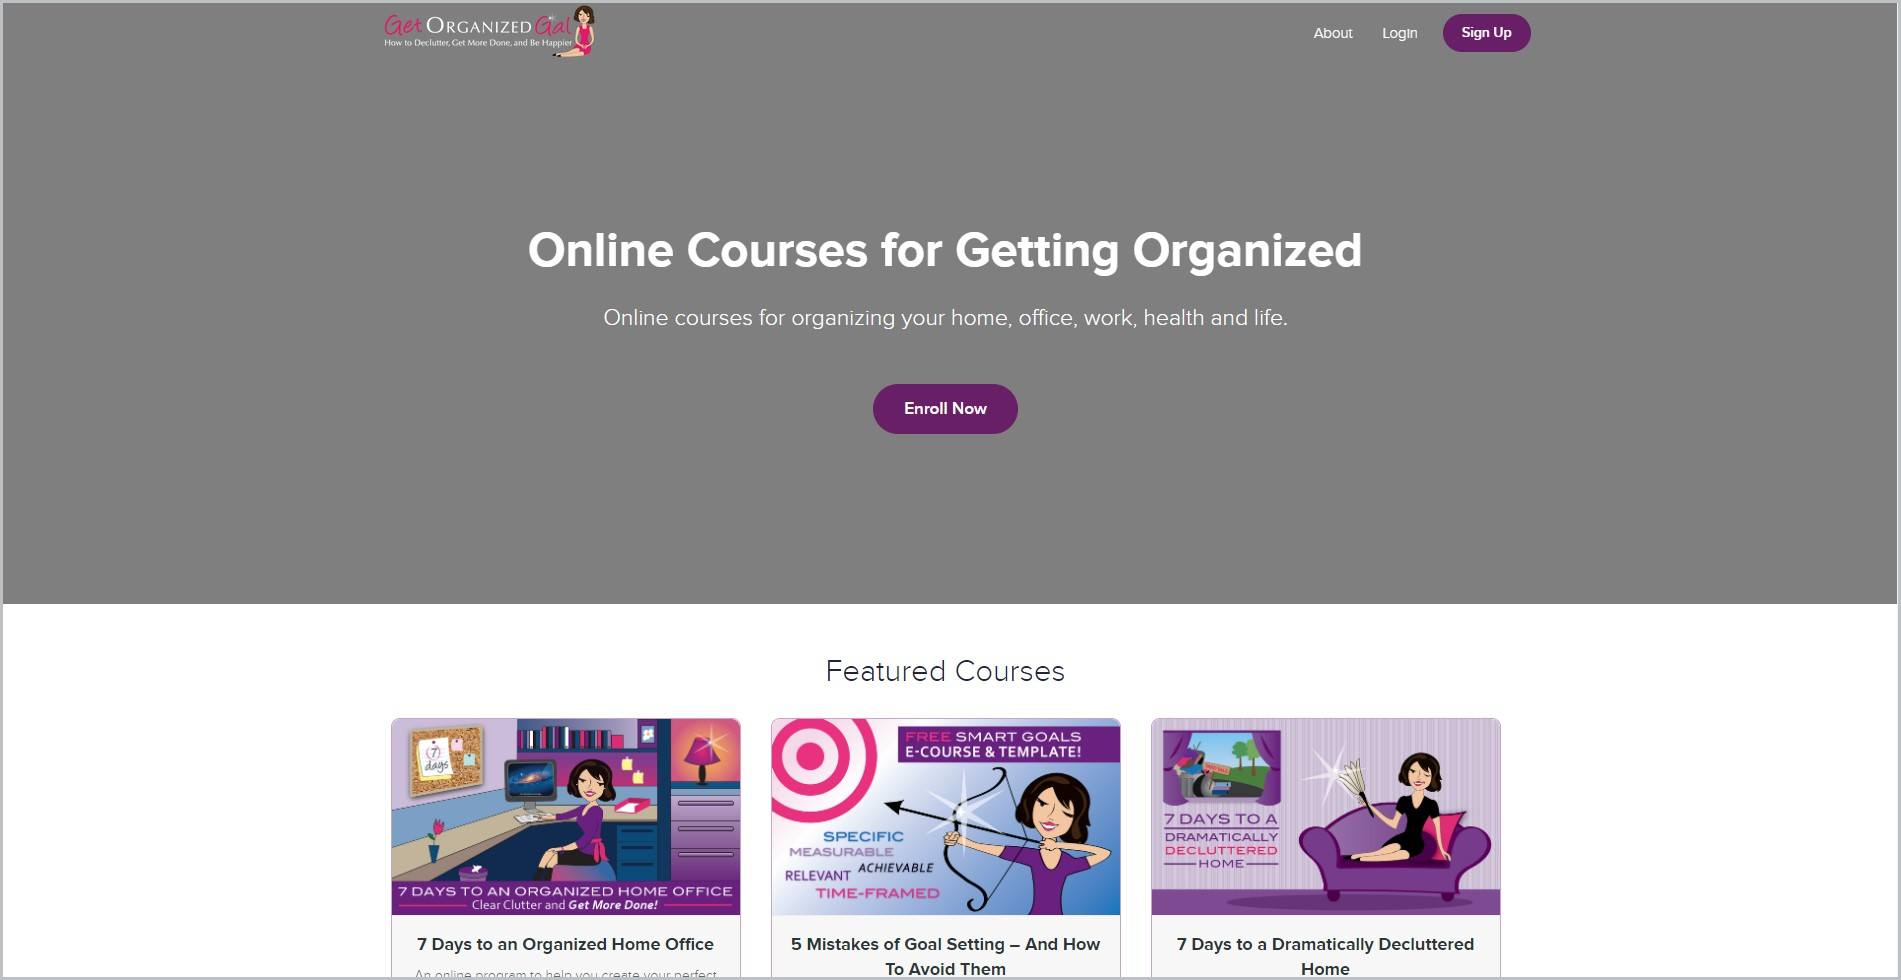 screenshot of Get Organized Gal homepage, with grey header with the website's name and main navigation menu, it showcases some of the online courses they offer